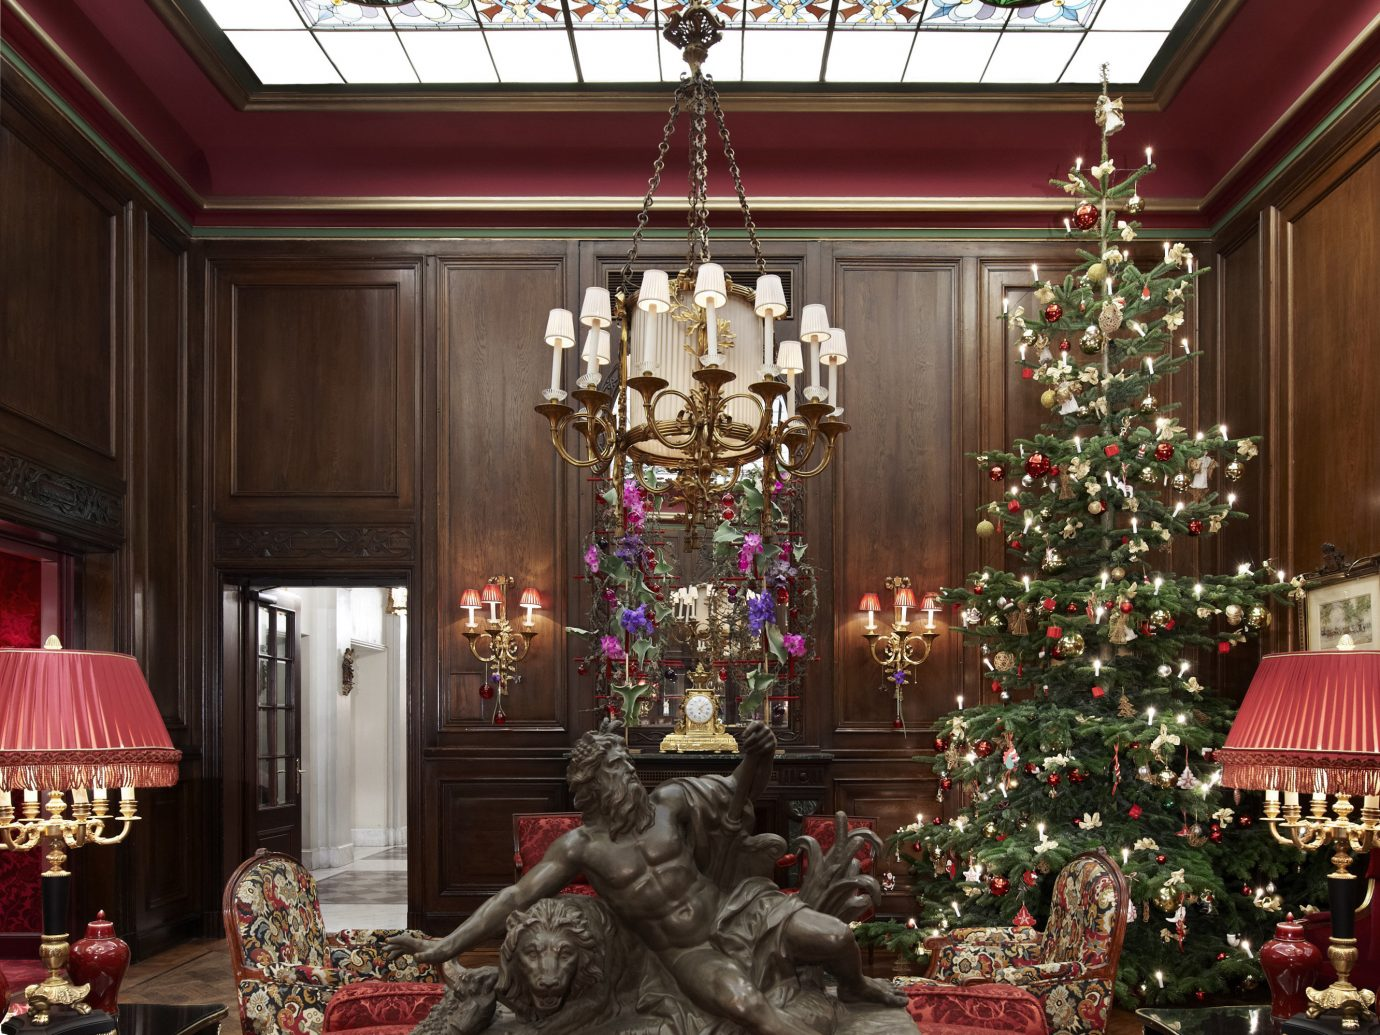 Hotels indoor Living room red decorated interior design living room ballroom christmas decoration function hall ceiling Lobby furniture